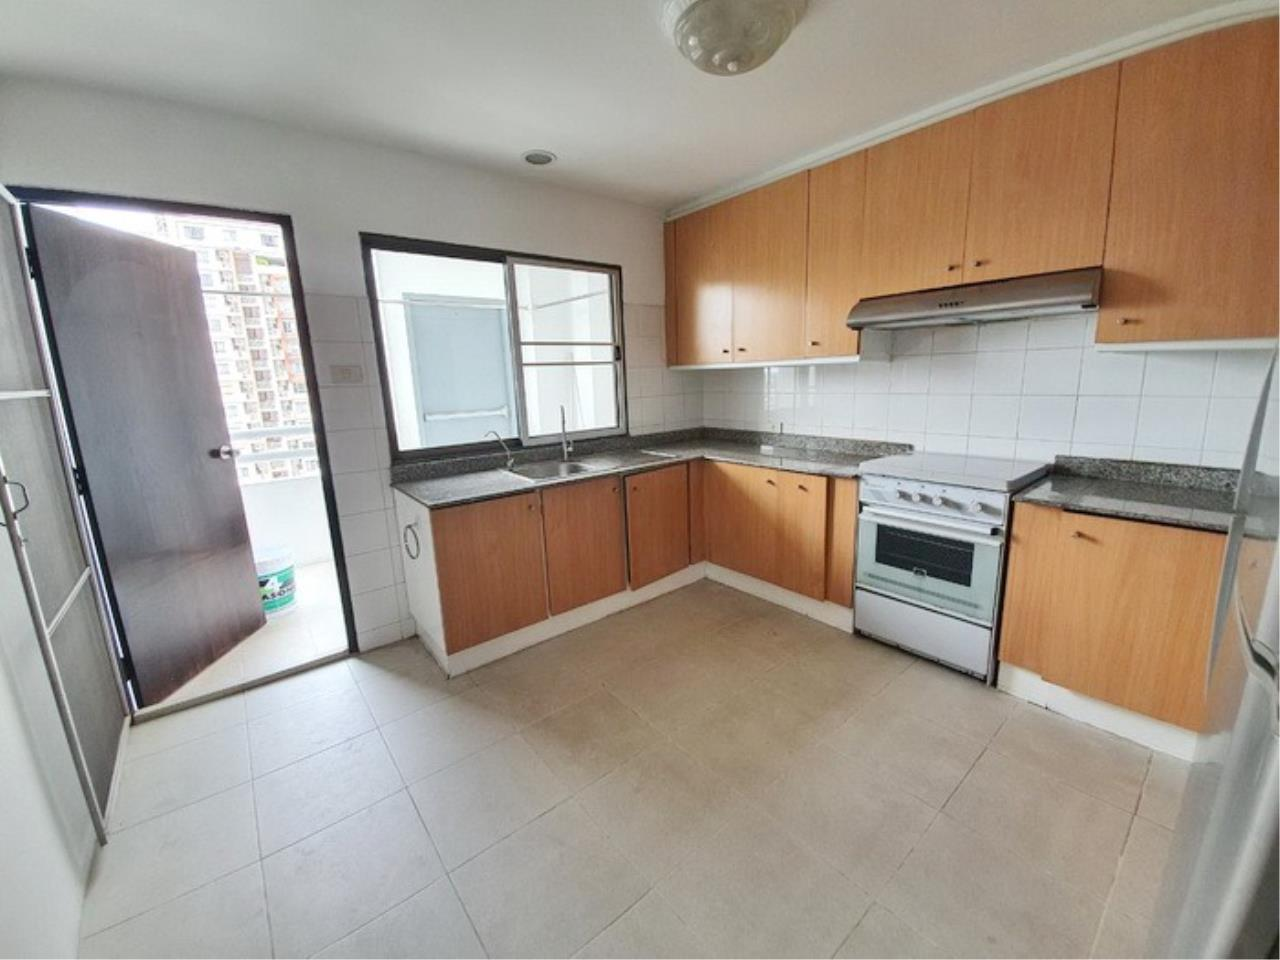 Bestbkkcondos Agency's regent on the park 1 - 250 Sq.M - for rent: 60000 THB - 3 bedrooms,3 bathrooms 9